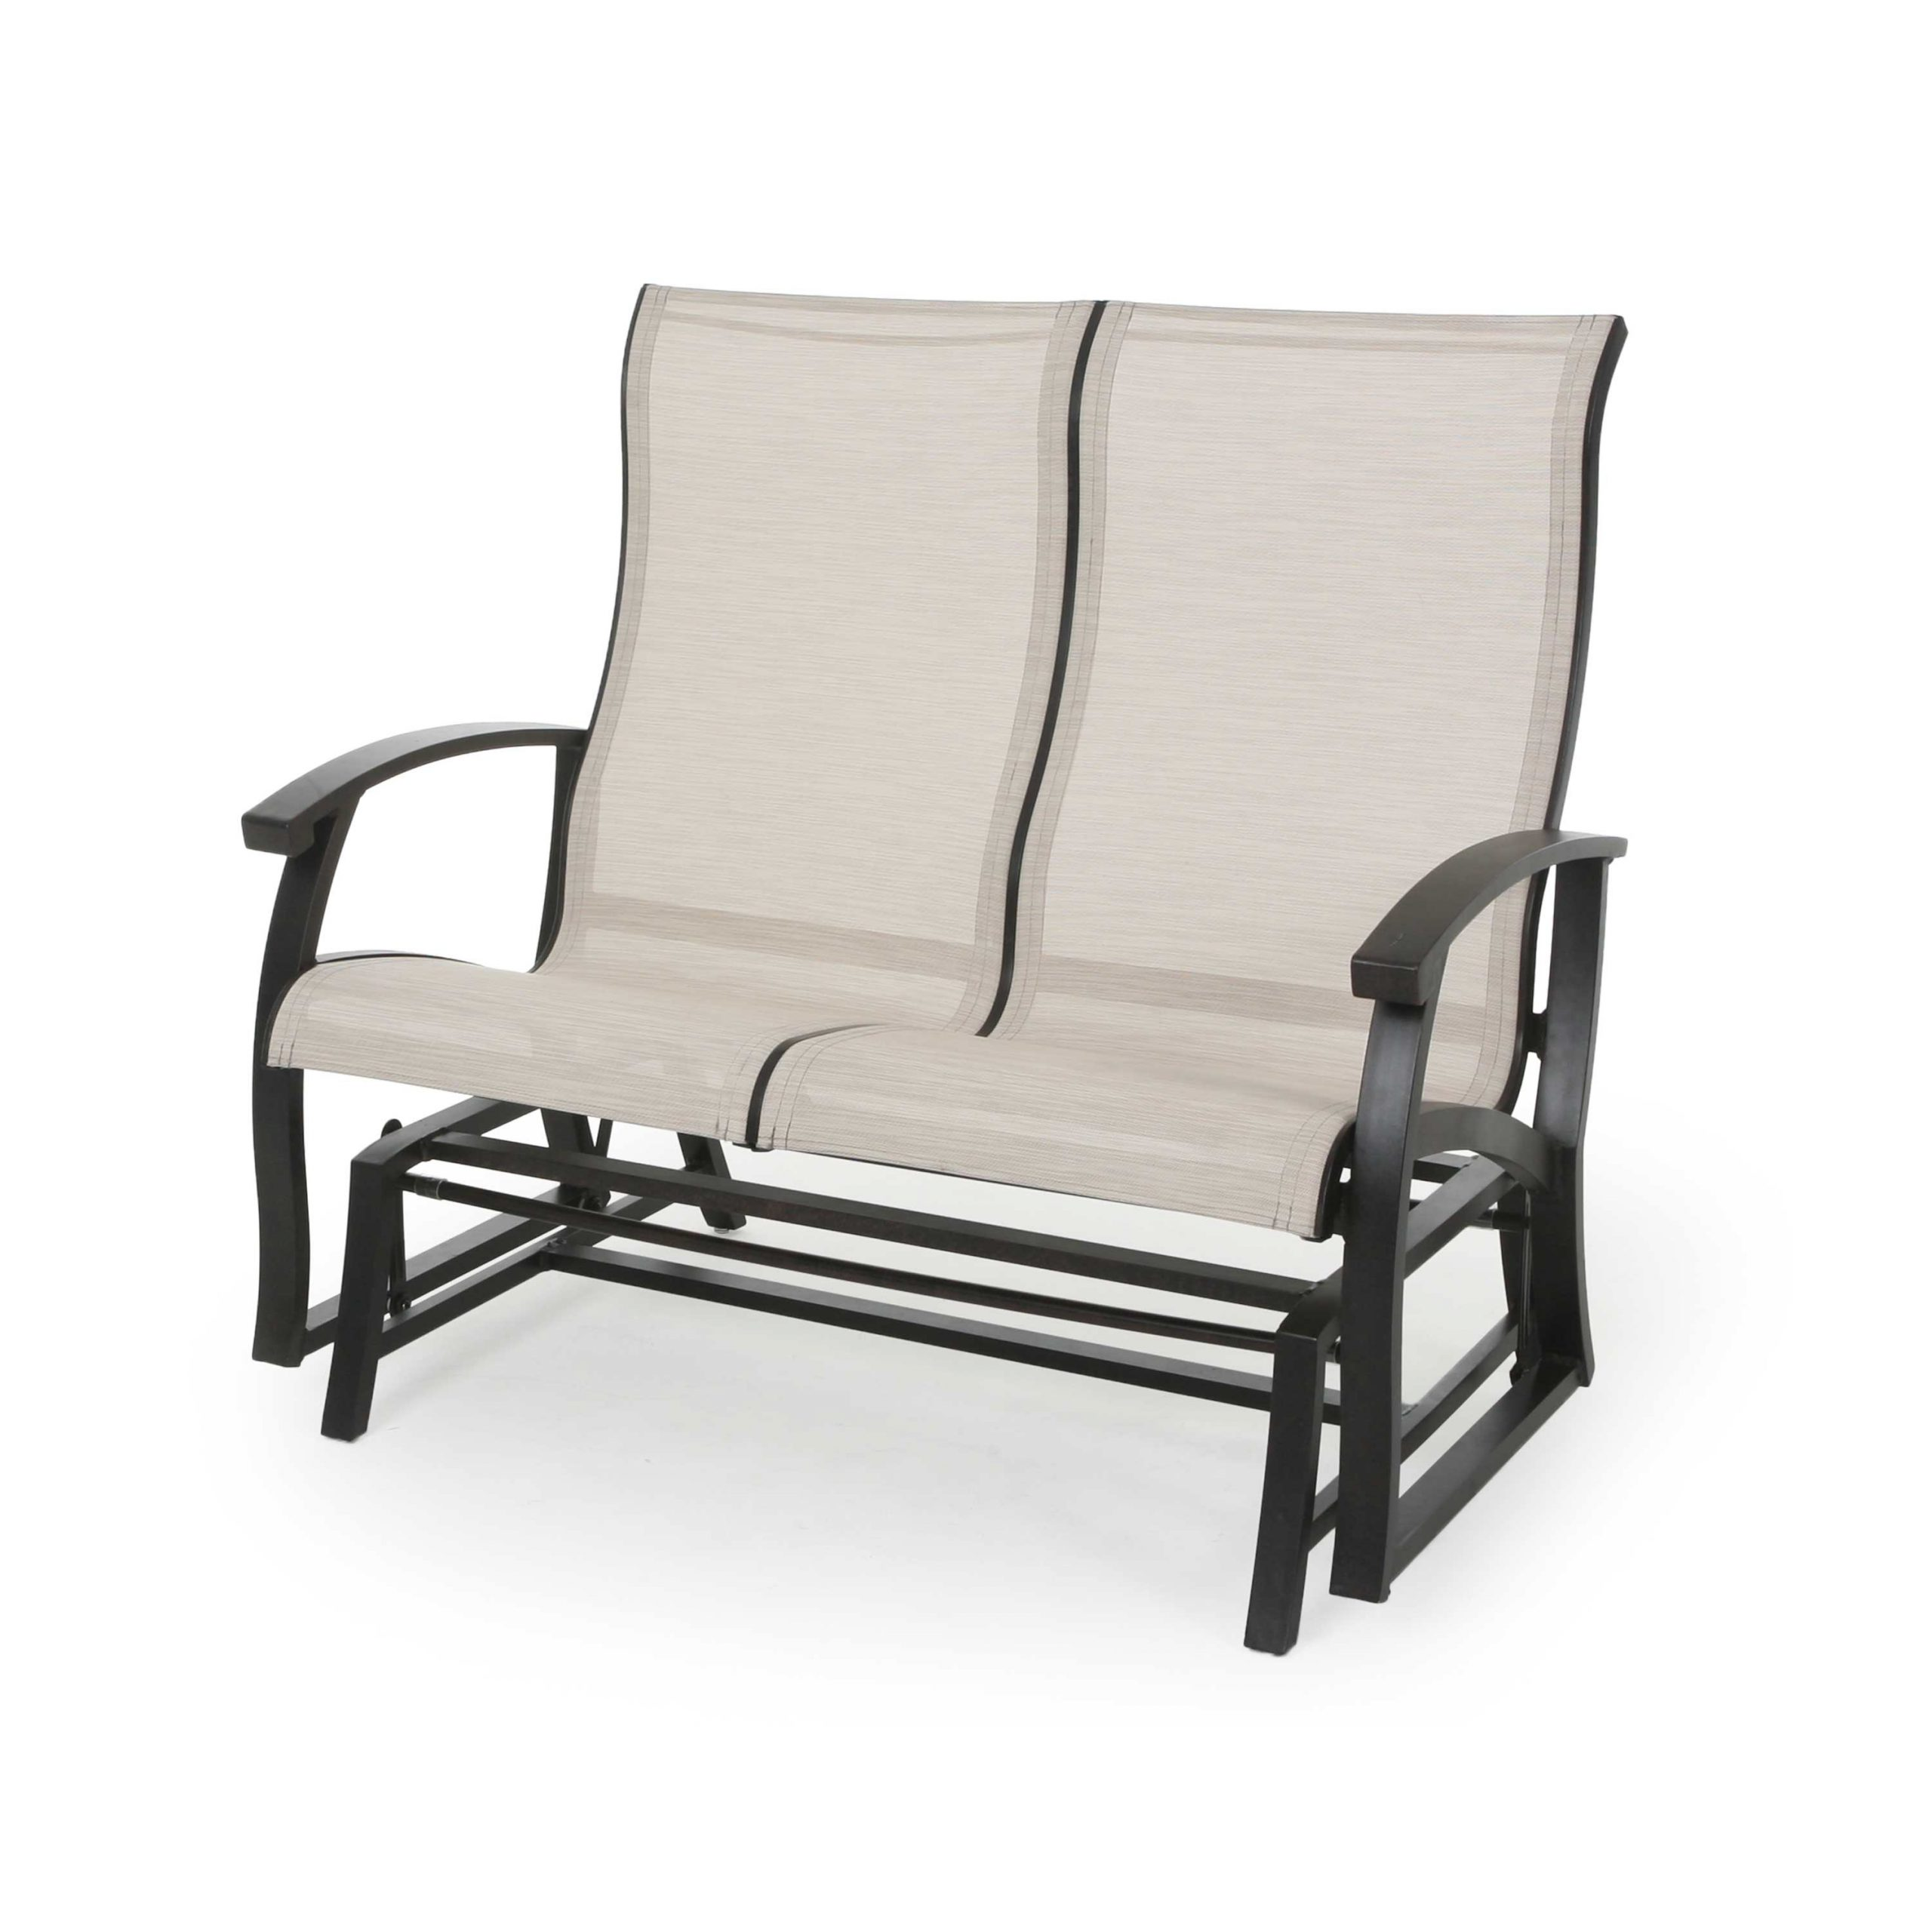 Mallin Georgetown Double Sling Glider Outdoor Furniture For Sling Double Glider Benches (View 12 of 25)